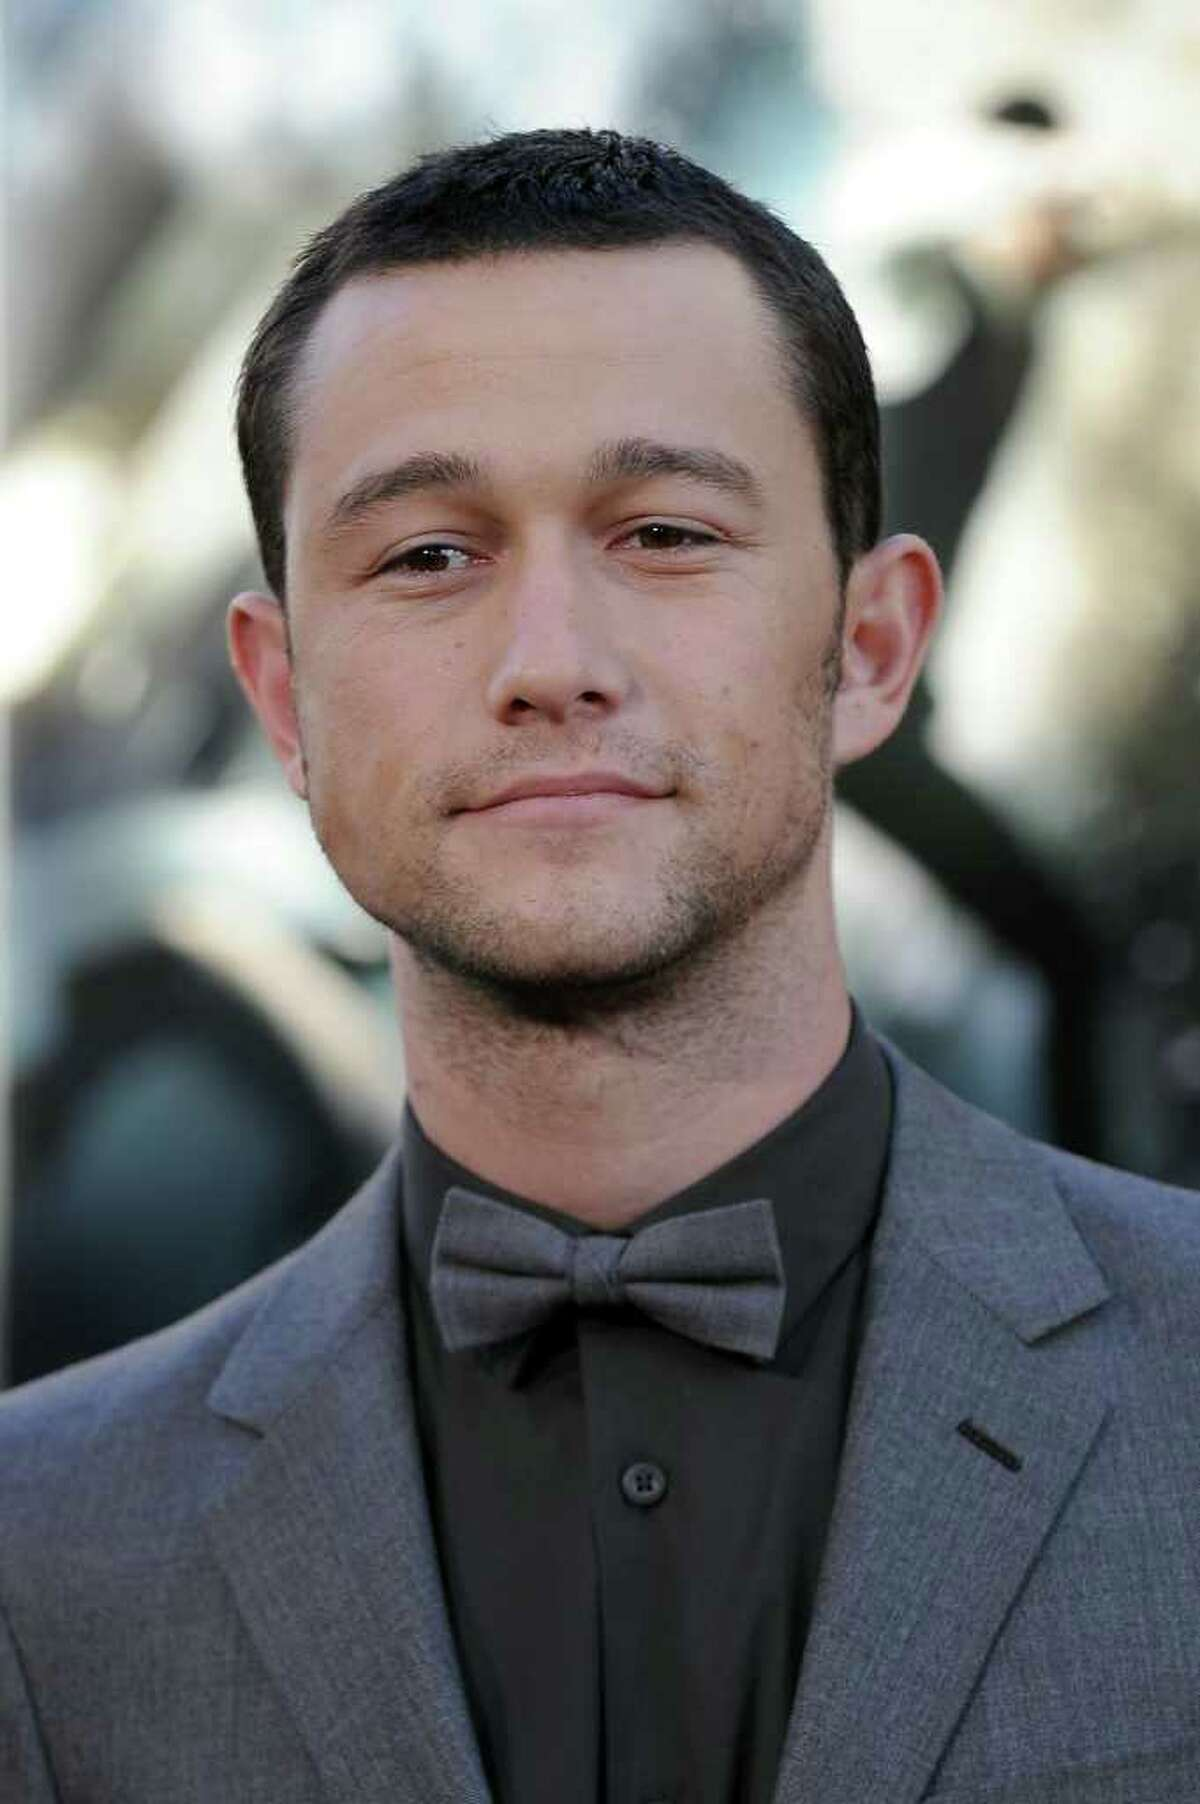 """Cast member Joseph Gordon-Levitt arrives for the premiere of """"Inception,"""" July 13 2010 at the Grauman's Chinese Theatre in the Hollywood section of Los Angeles. AFP PHOTO / Robyn BECK (Photo credit should read ROBYN BECK/AFP/Getty Images)(Photo Credit should Read /AFP/Getty Images)"""